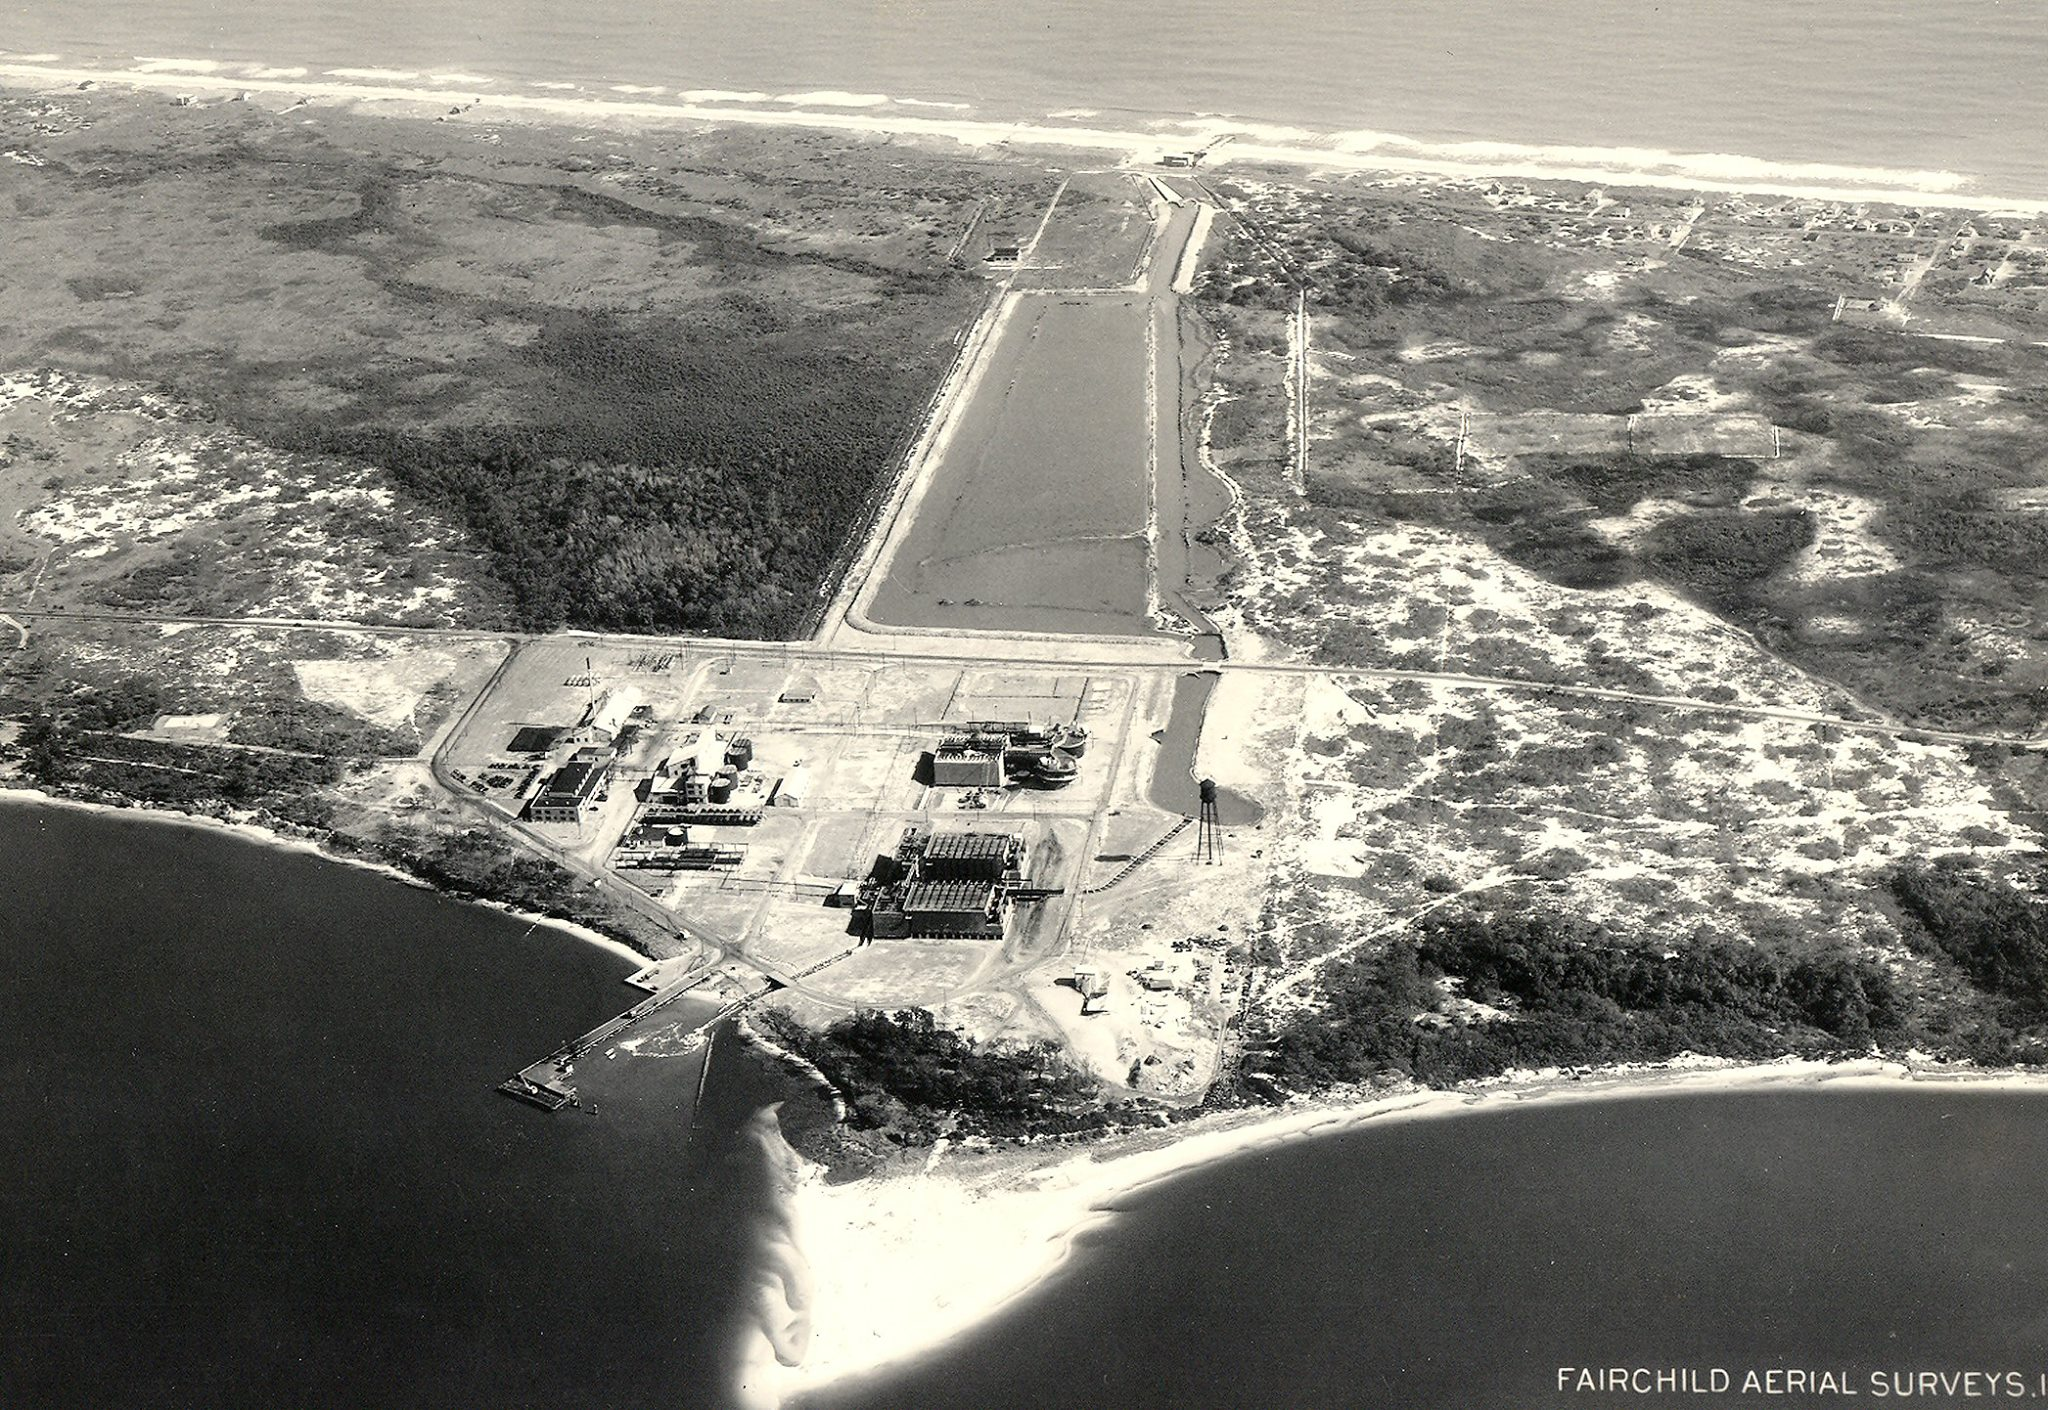 https://federal-point-history.org/wp-content/uploads/photo-gallery/Ethylene%20Di-Bromide%20Plant%20-%20Kure%20Beach%202.jpg